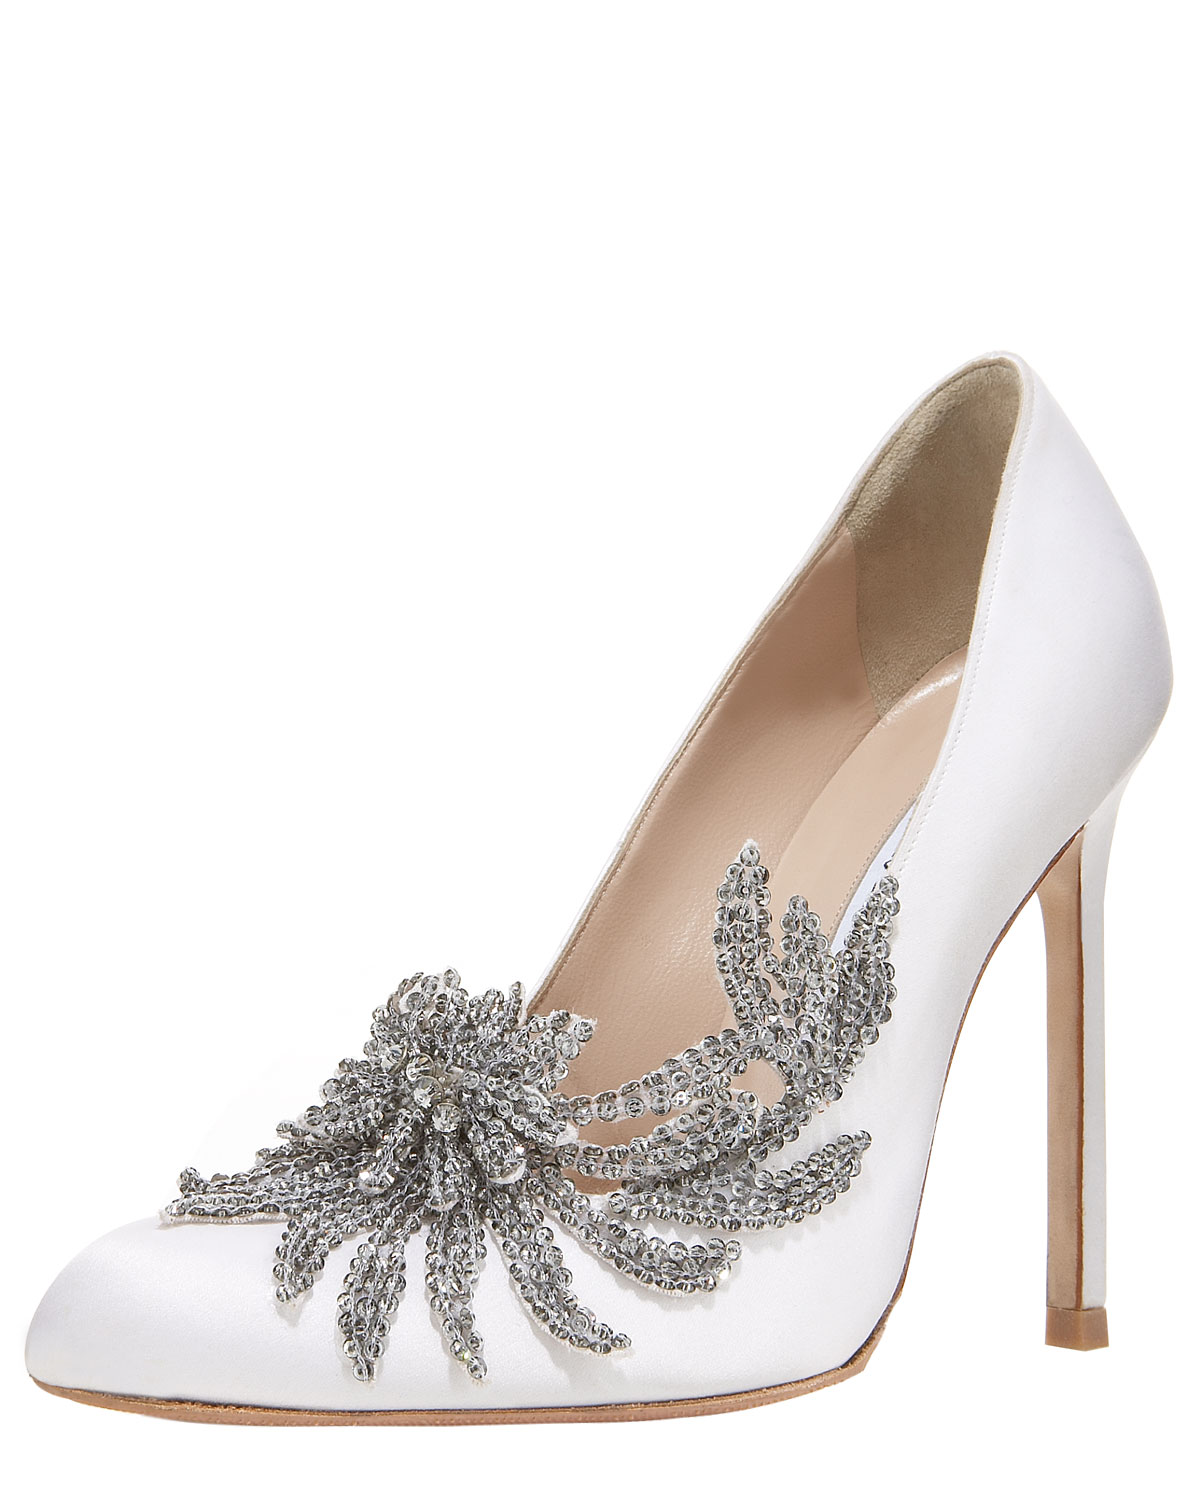 7454be2360f Manolo Blahnik Swan Embellished Satin Pump